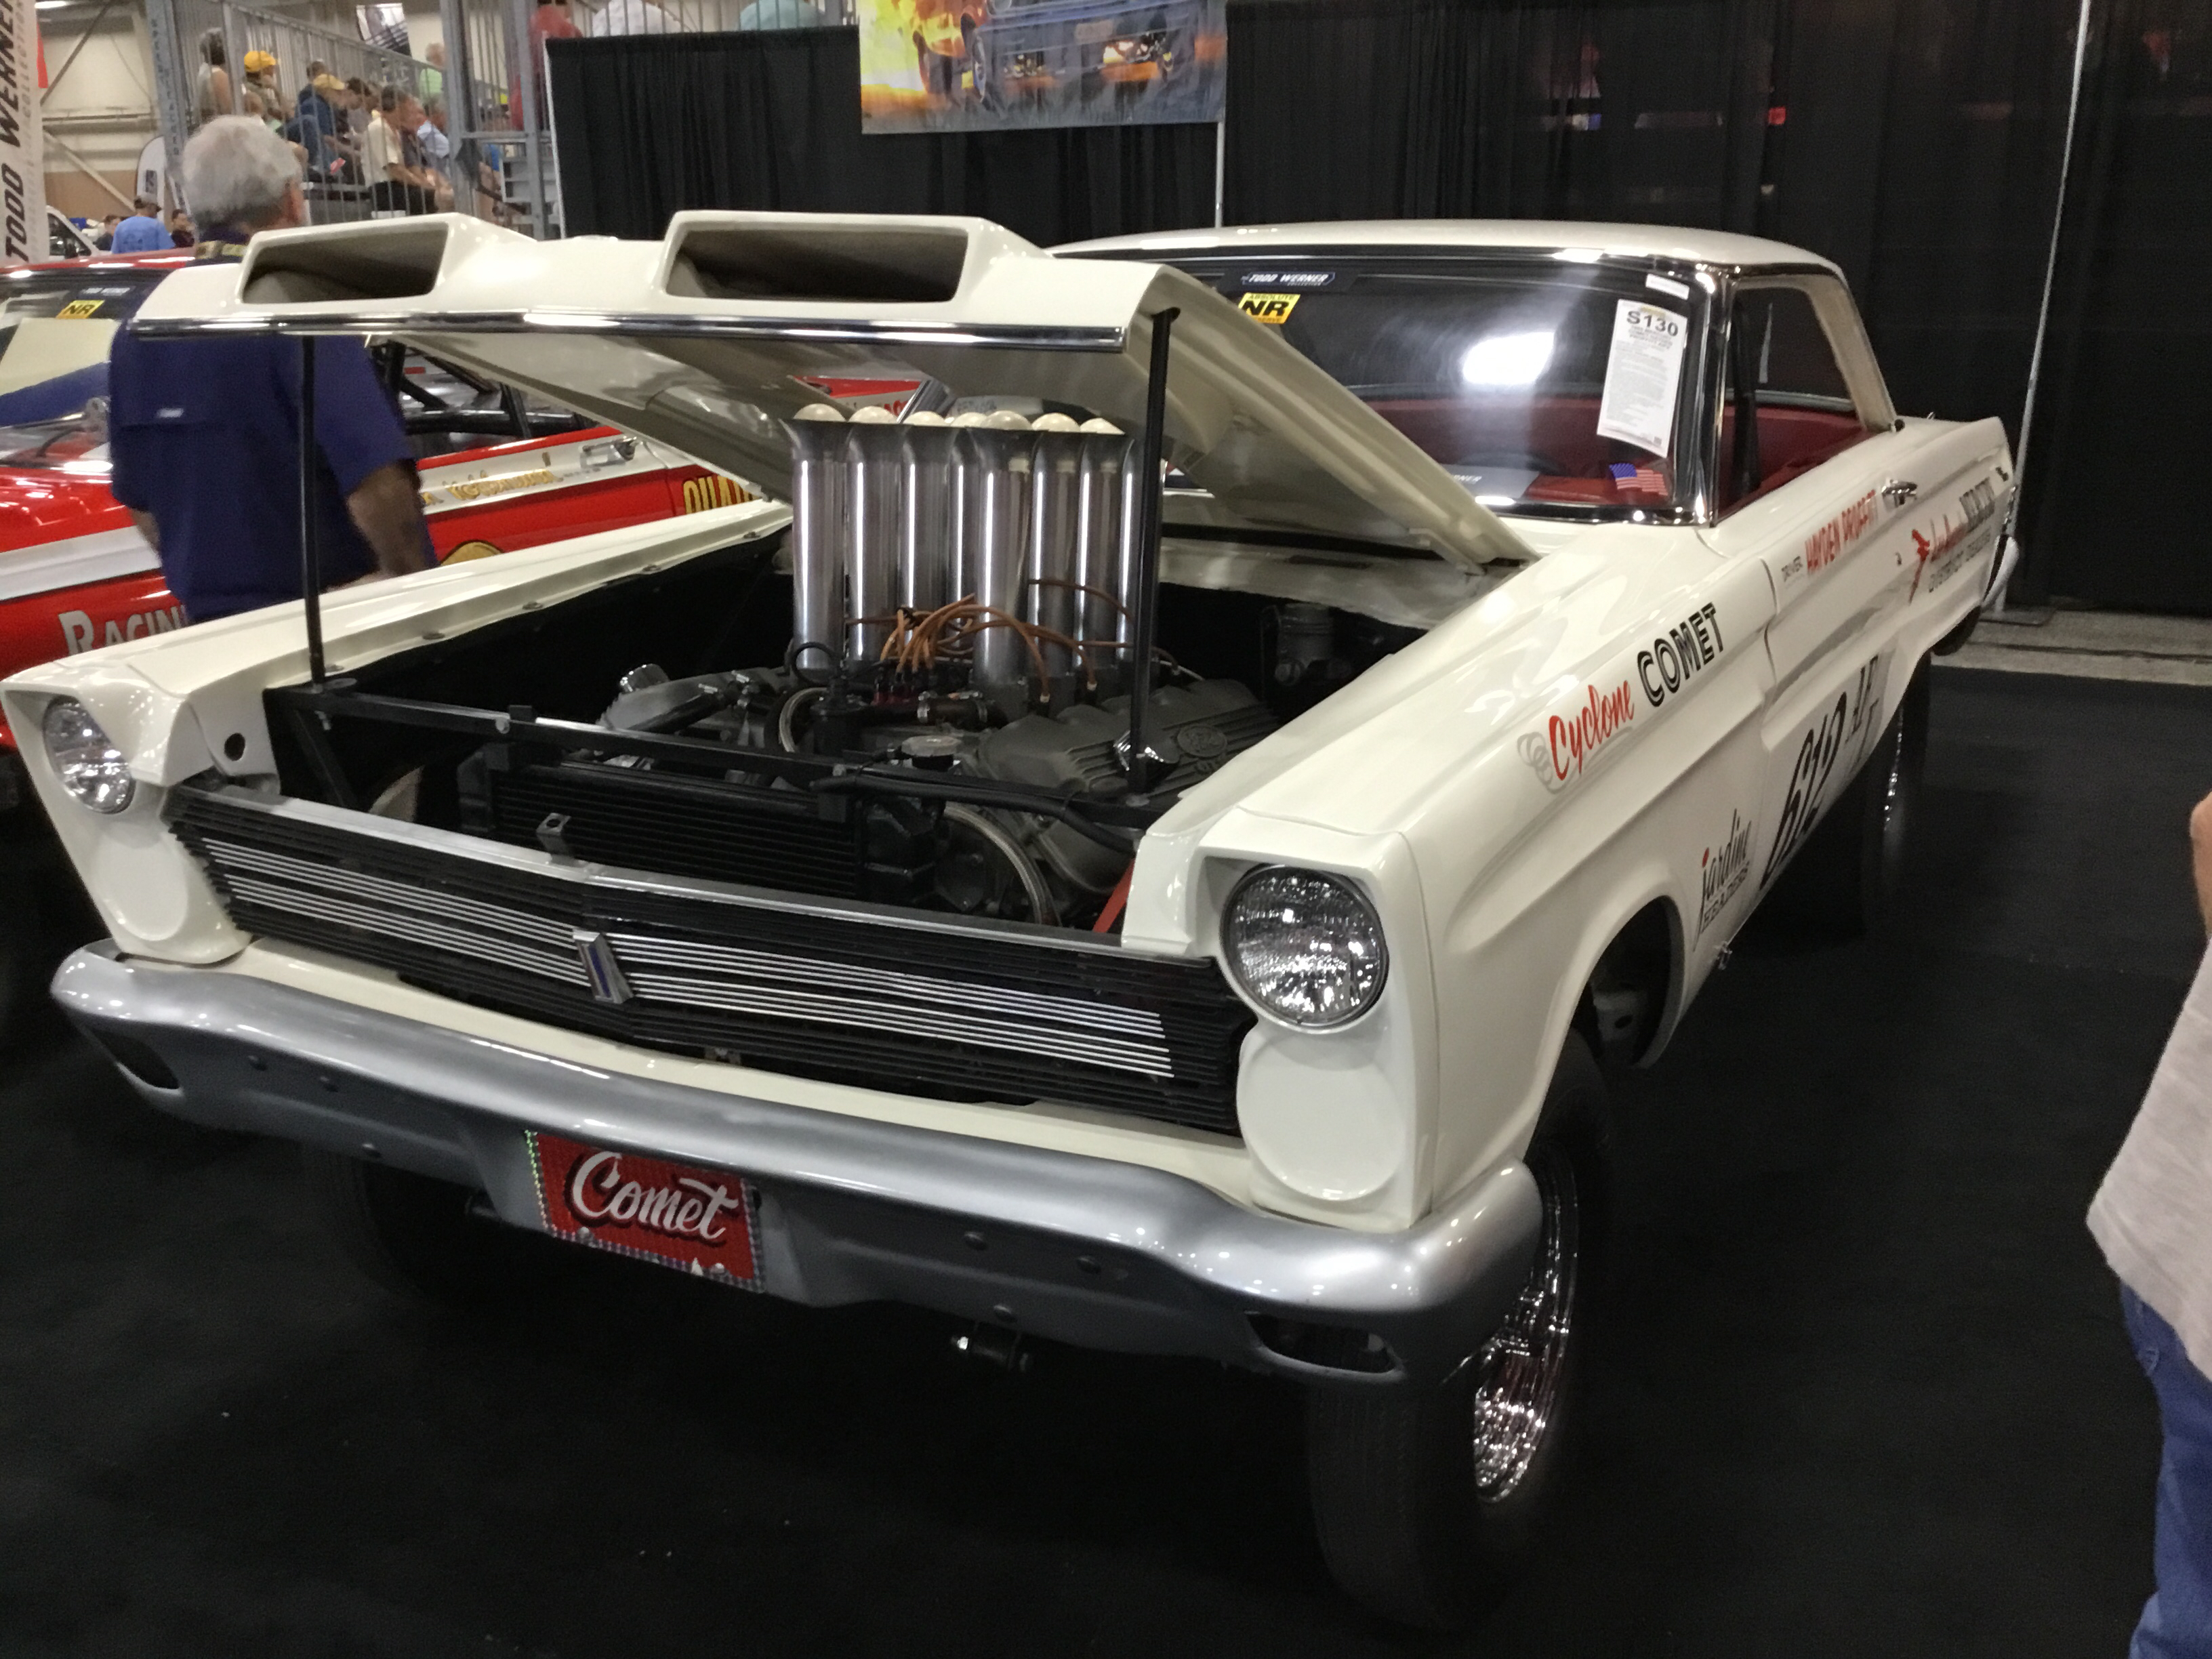 1965 Mercury Comet Caliente Values | Hagerty Valuation Tool®